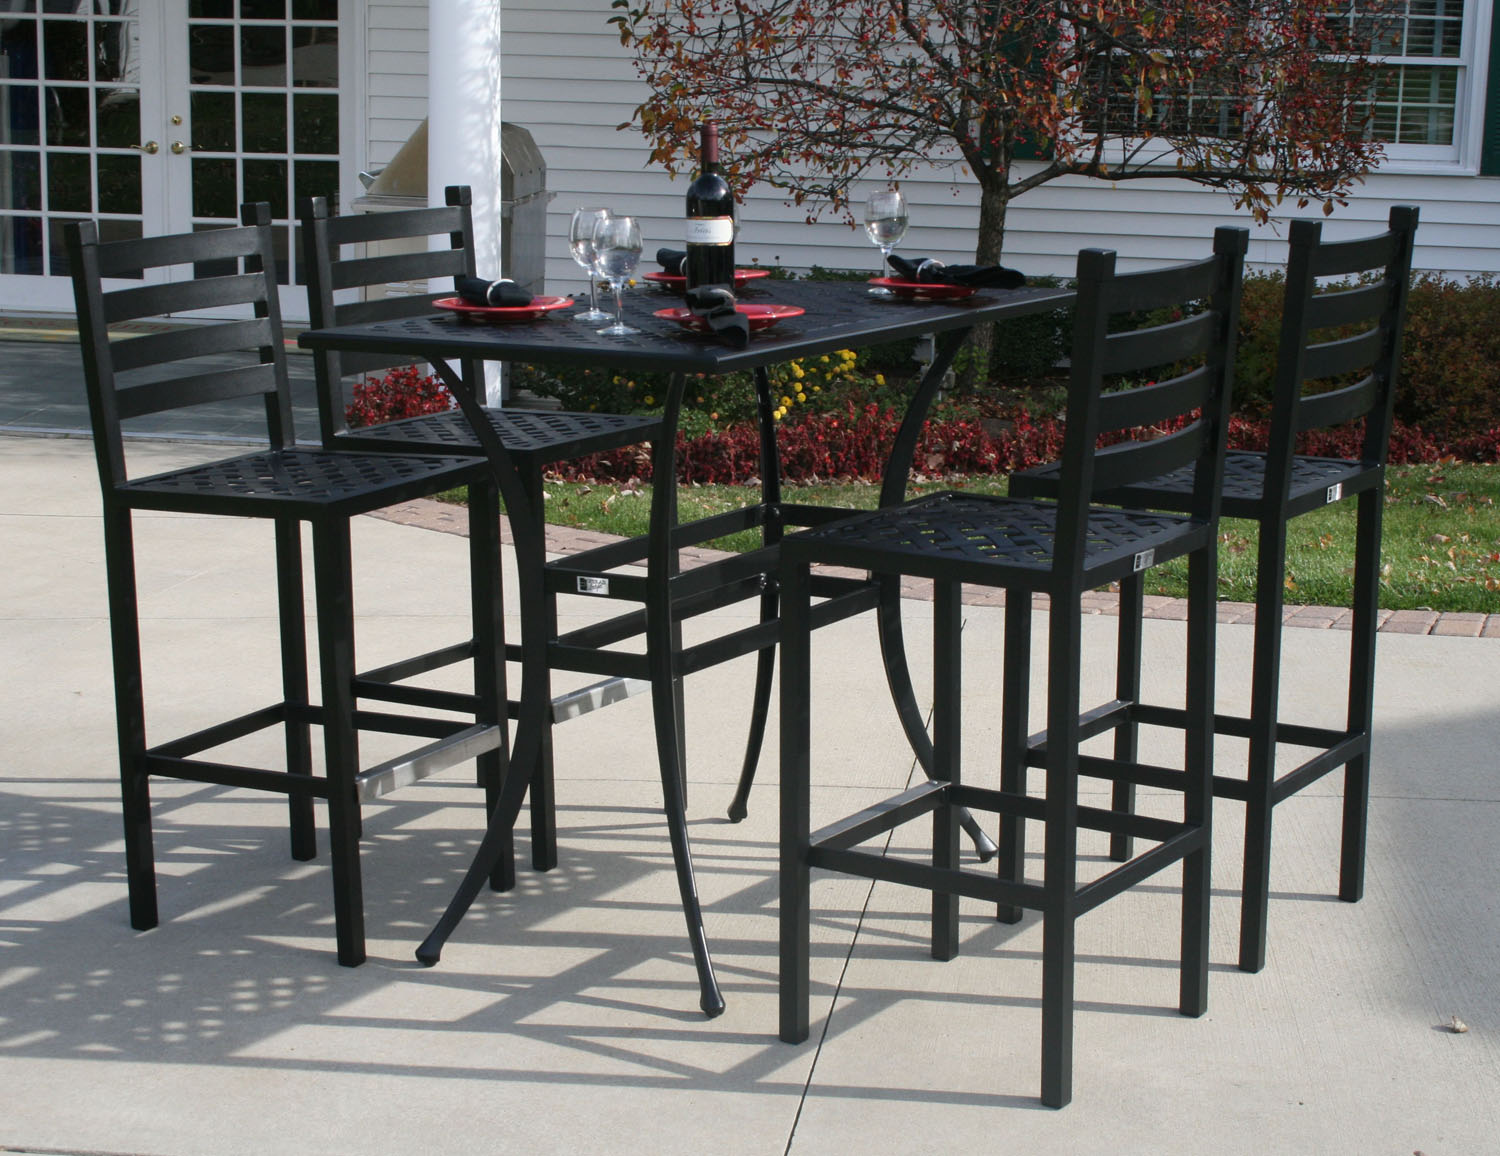 Ansley Luxury 4 Person All Welded Cast Aluminum Patio Furniture Bar Height Set